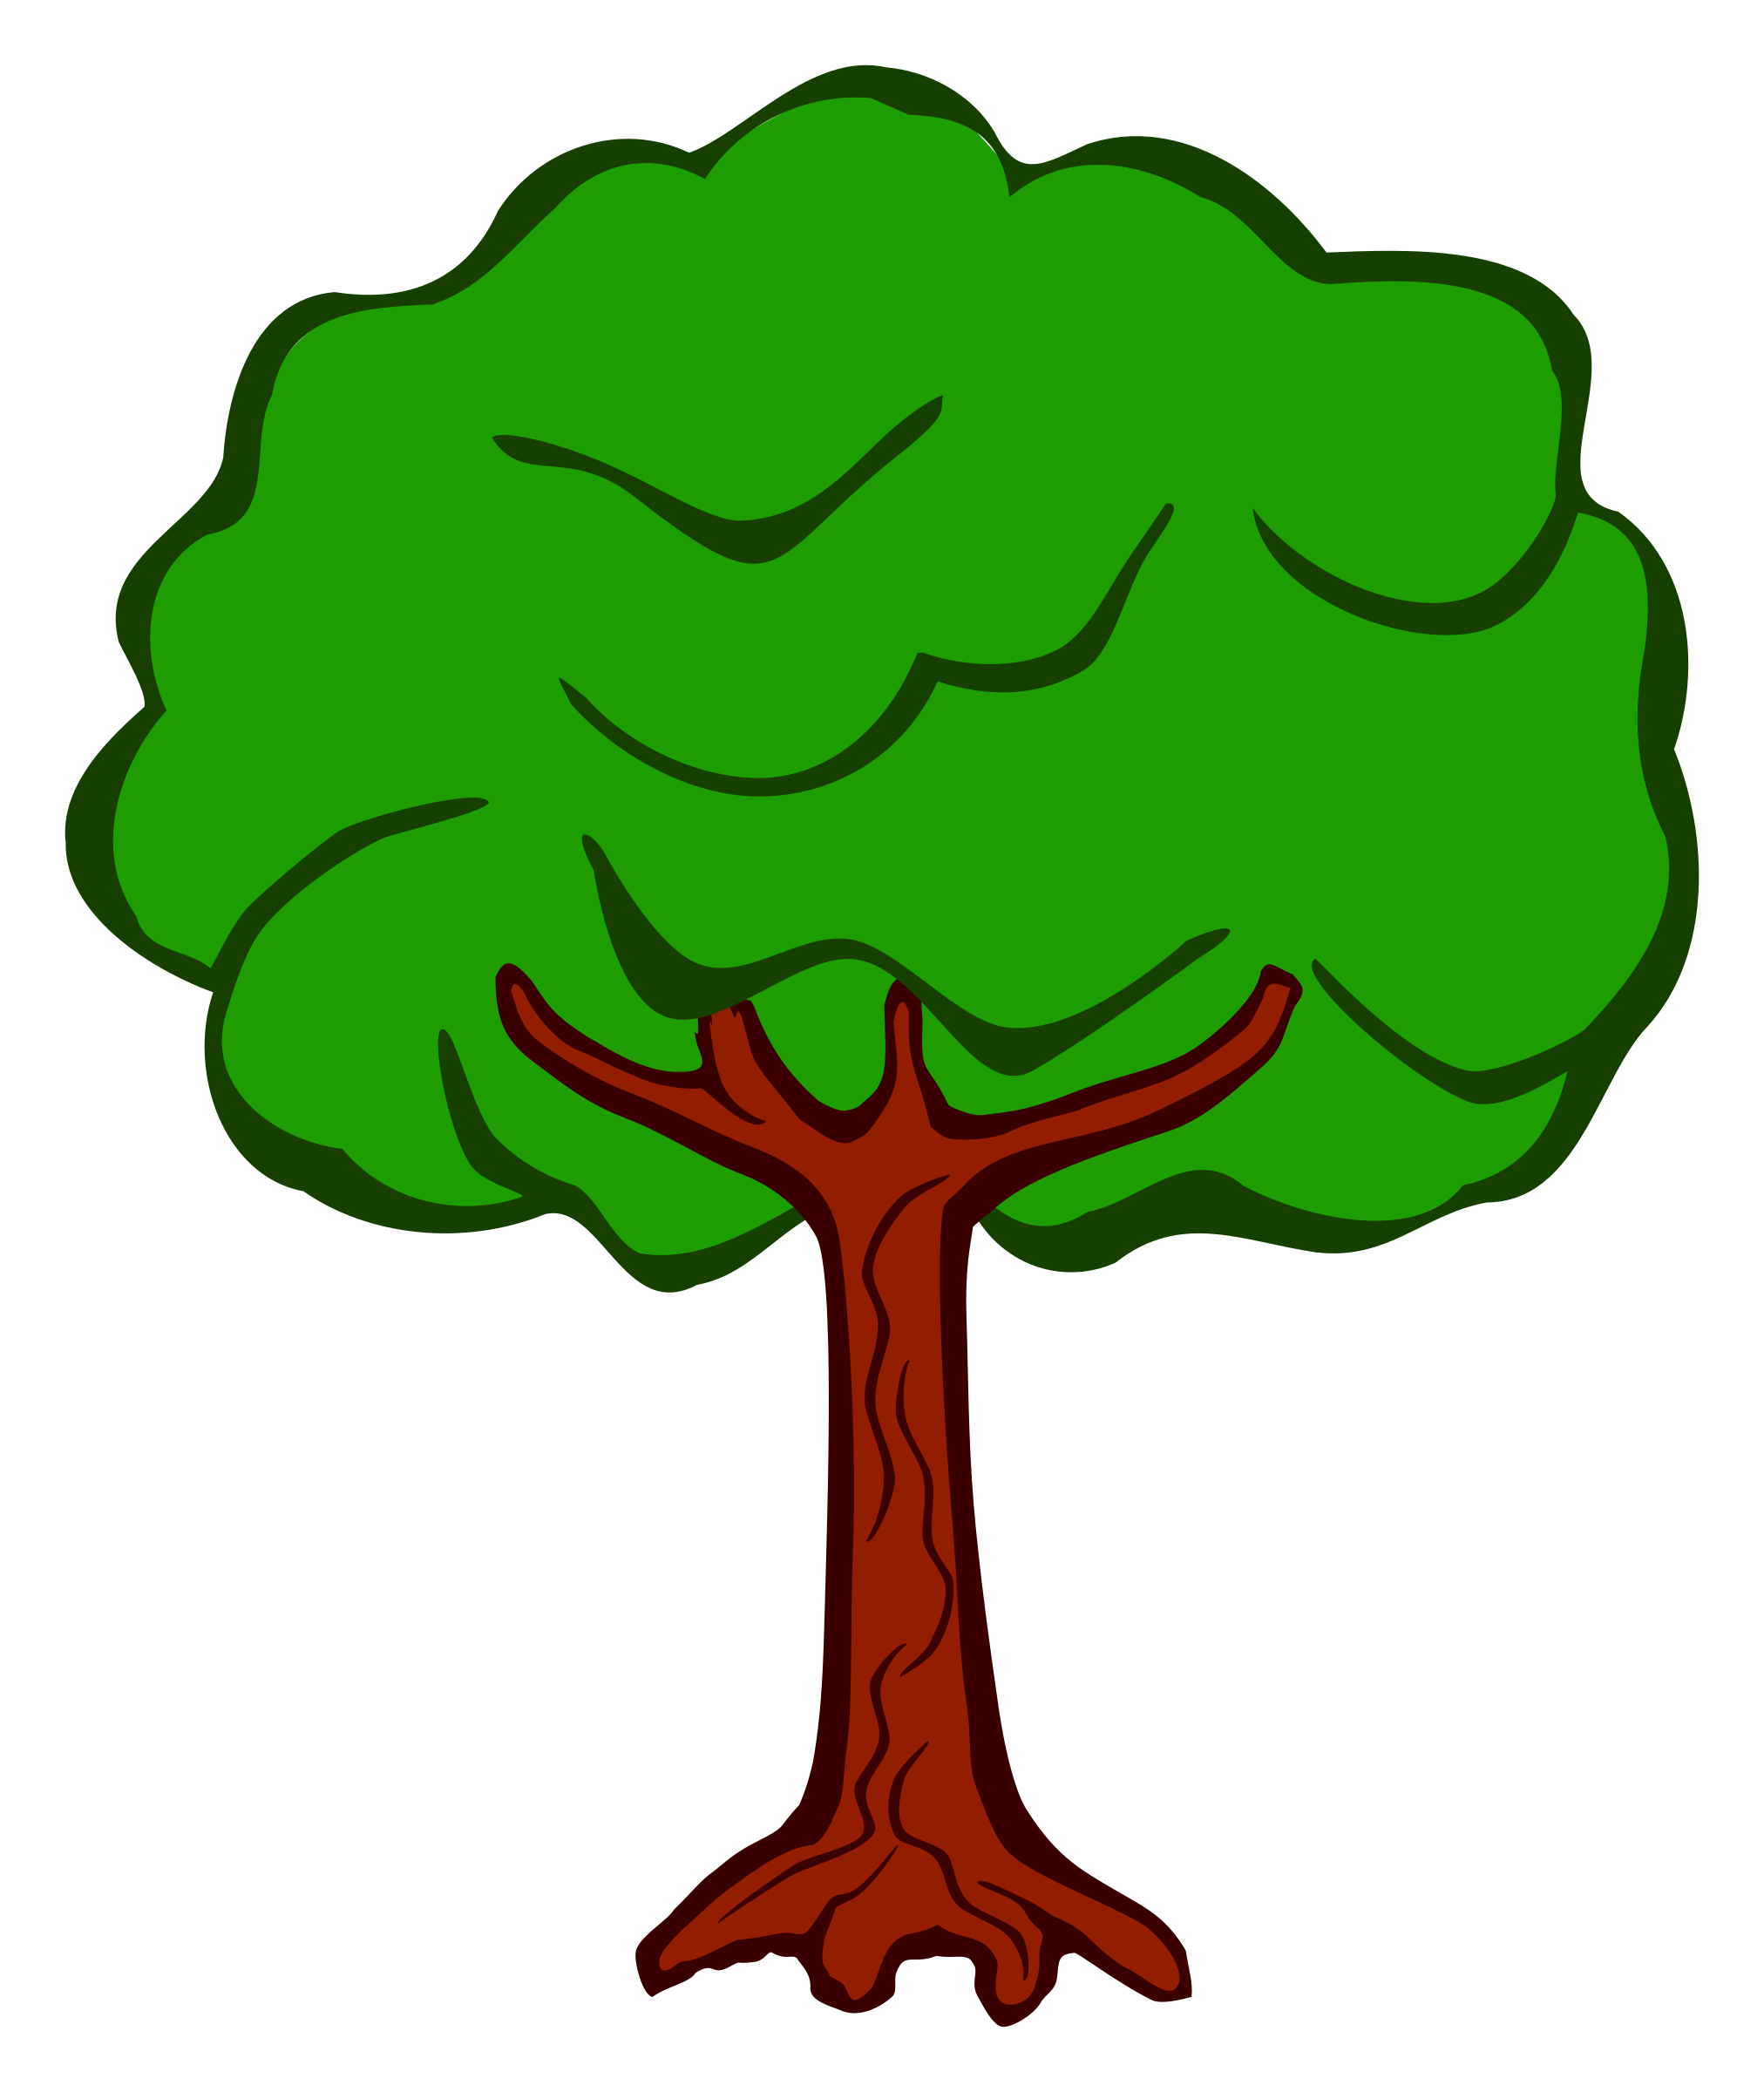 Coloured big image png. Tree clipart printable